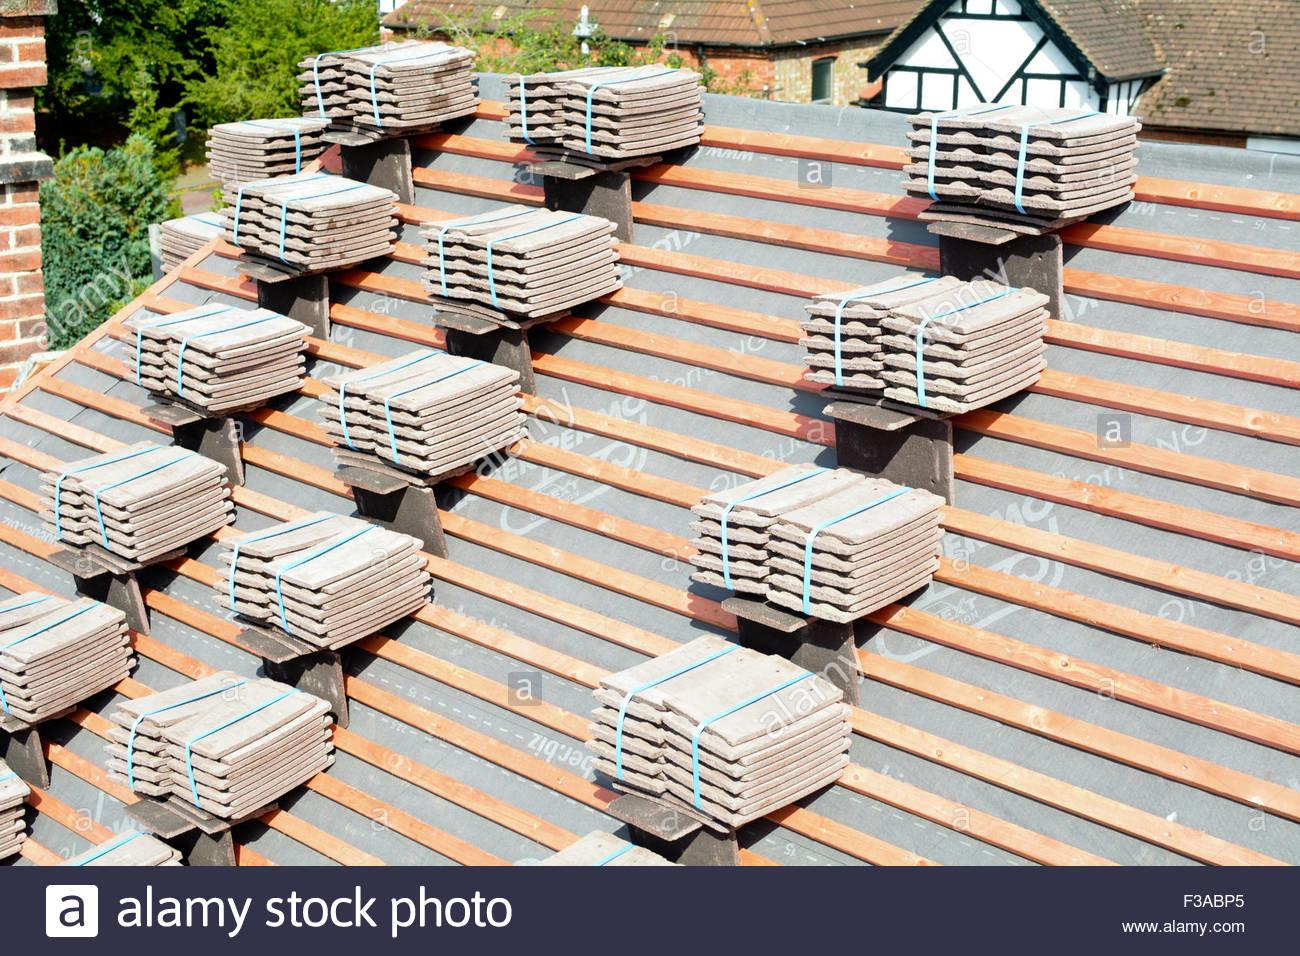 Roof Tiles Stacked Piles Wooden Battens Ready